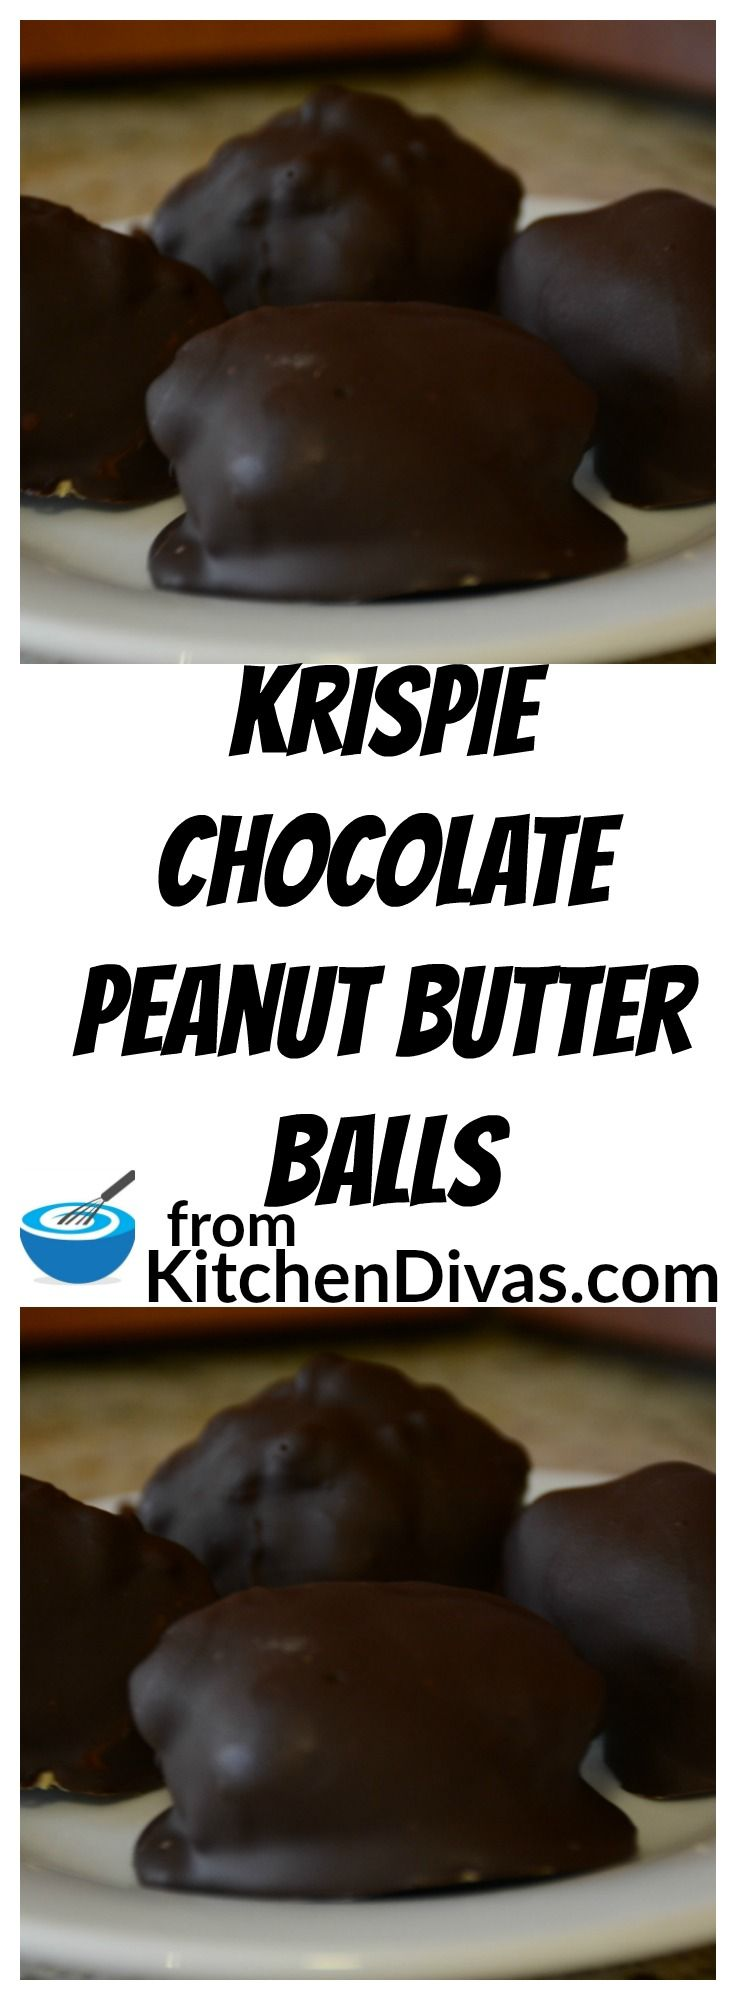 76251 best wow food group board images on pinterest kitchens krispie chocolate peanut butter balls forumfinder Choice Image